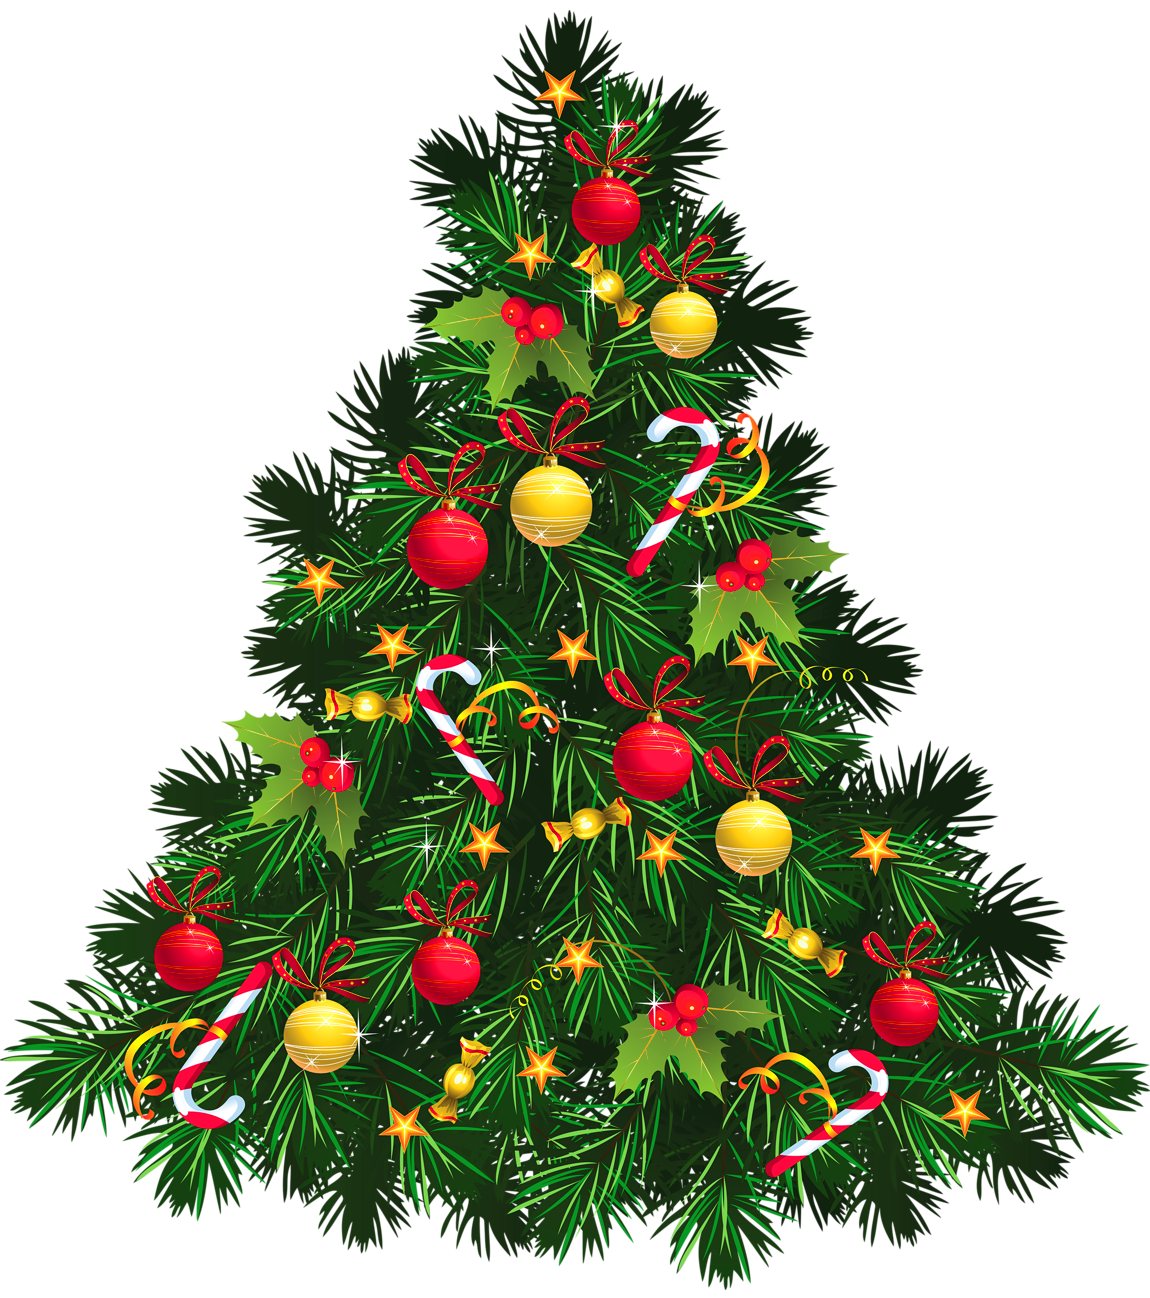 Transparent Christmas Santa Hat And Ornaments Decoration Png Clipart Pintura De Natal Natal Artesanato E Faca Voce Mesmo